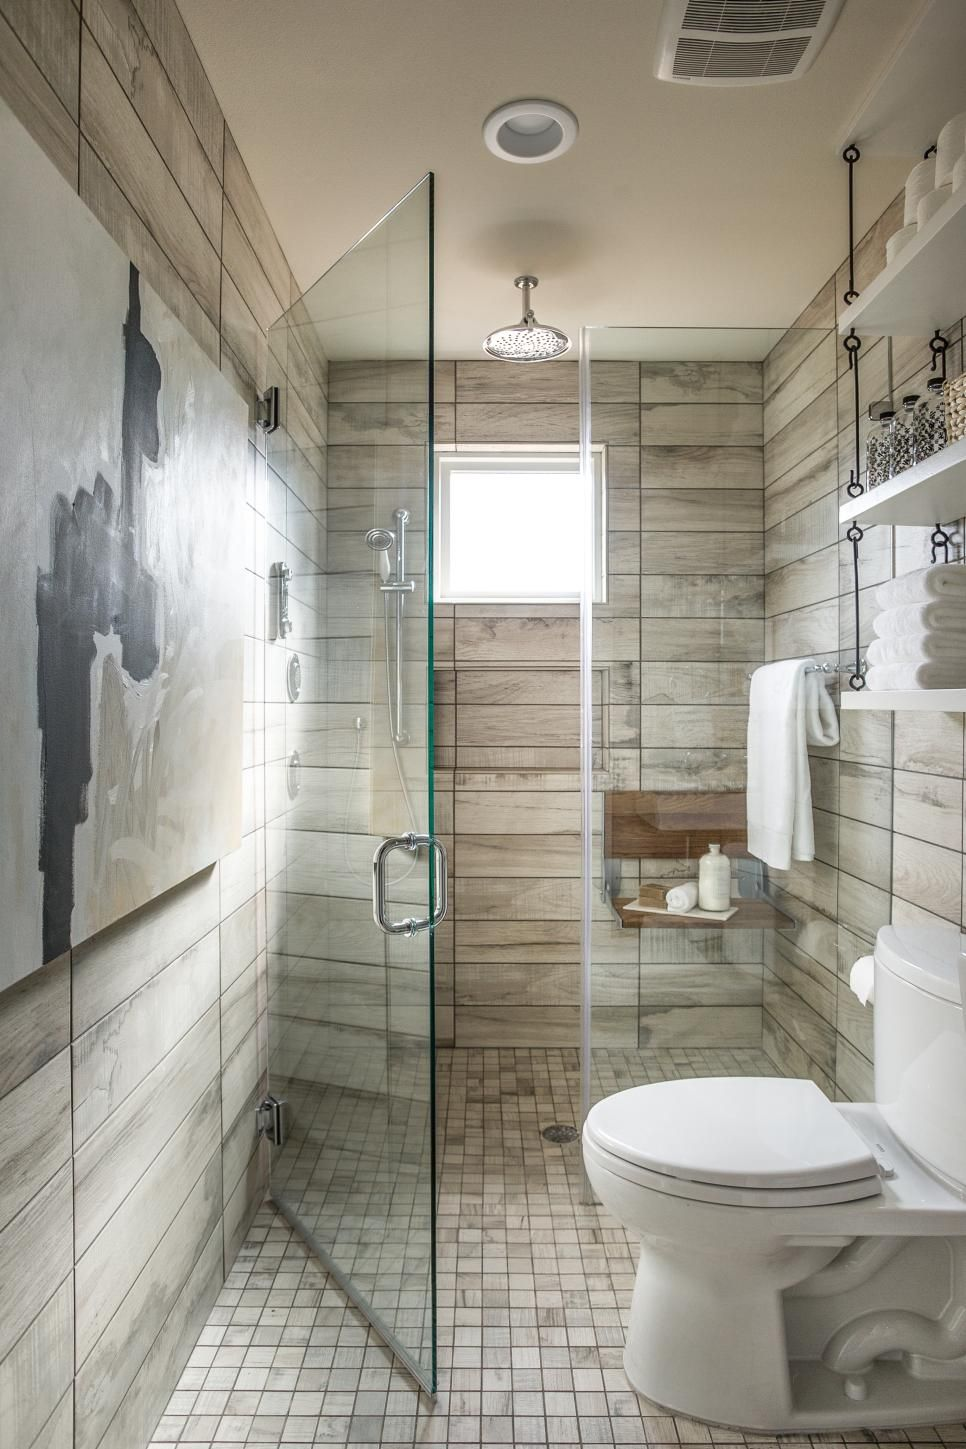 Bathroom Pictures From Hgtv Smart Home 2015 Universal Design